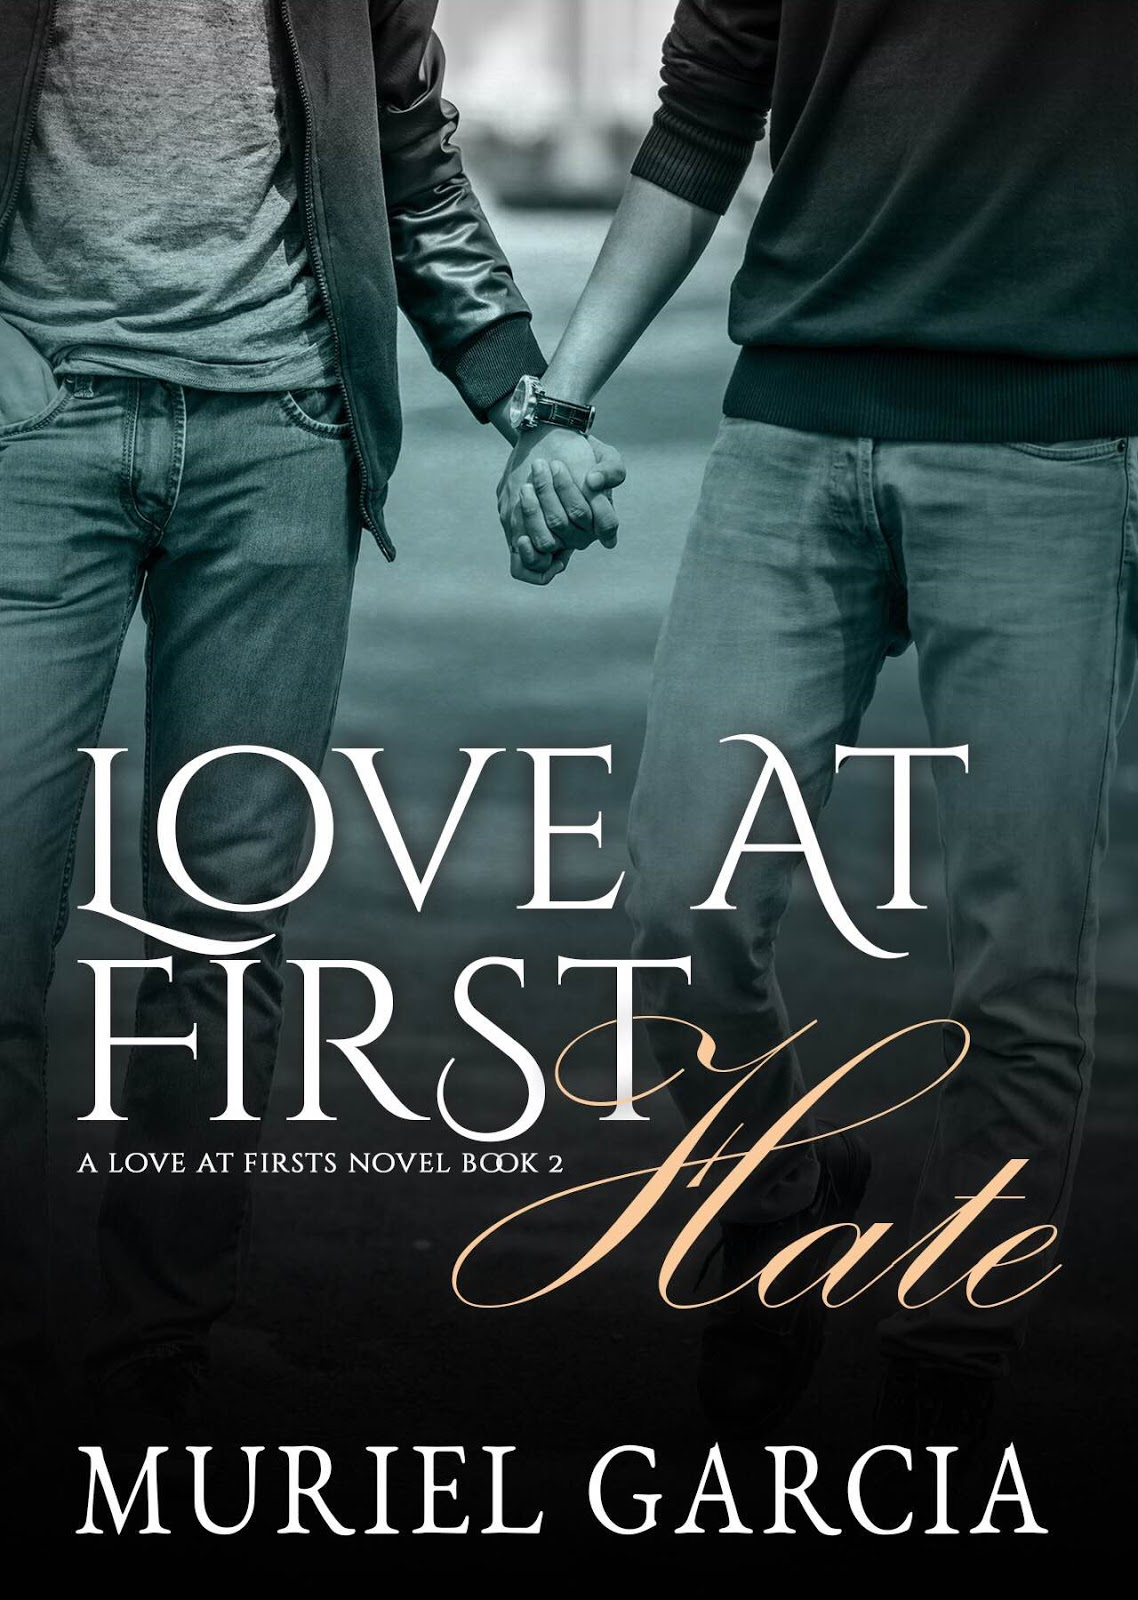 Love at First Hate by Muriel Garcia - Who Picked This?